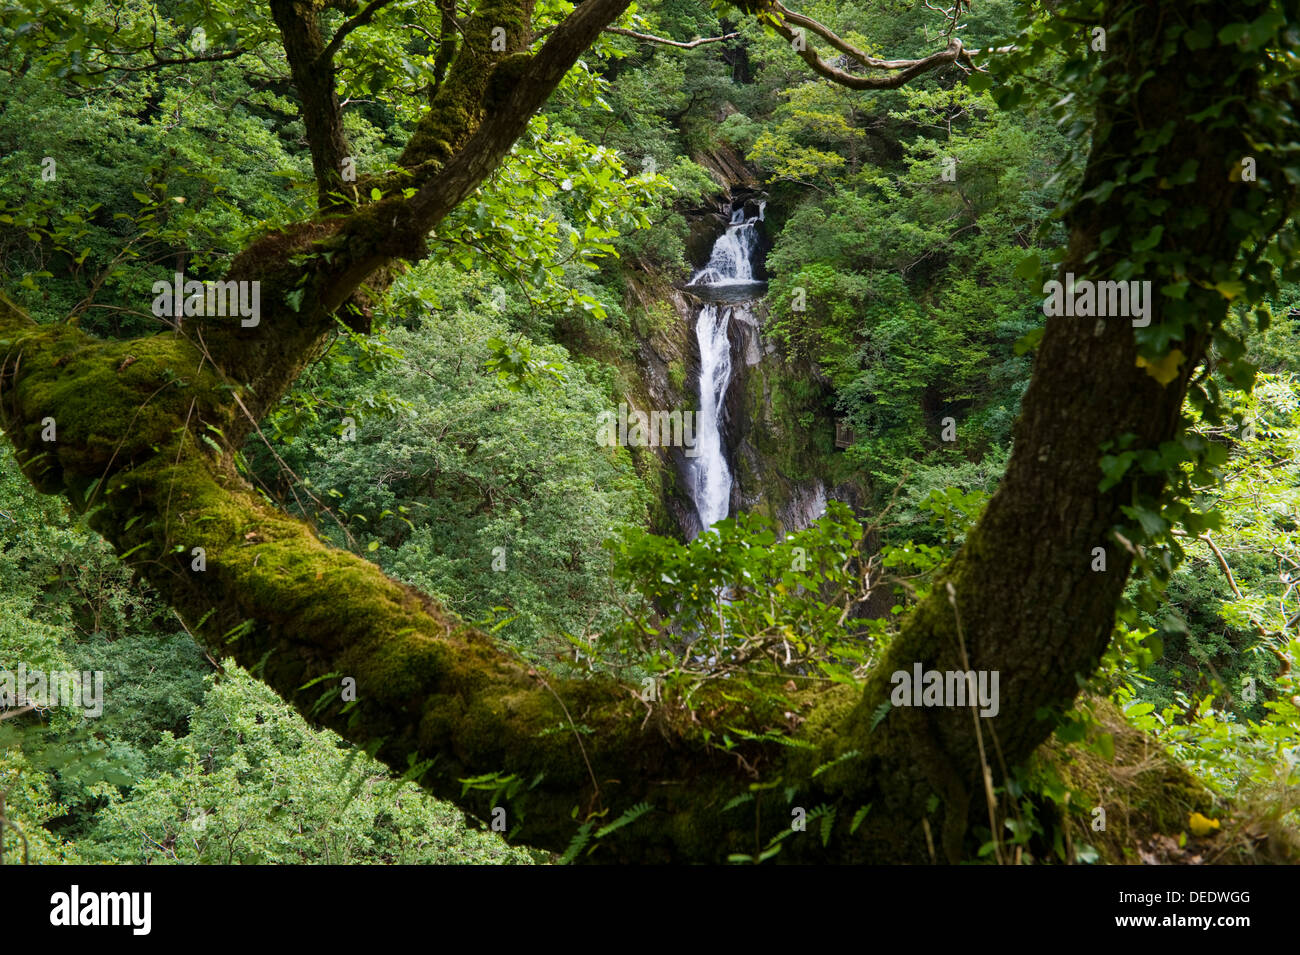 Waterfall viewed from the Nature Trail on the Jacob's Ladder footpath below Devil's Bridge near Aberystwyth Ceredigion West Wales UK - Stock Image